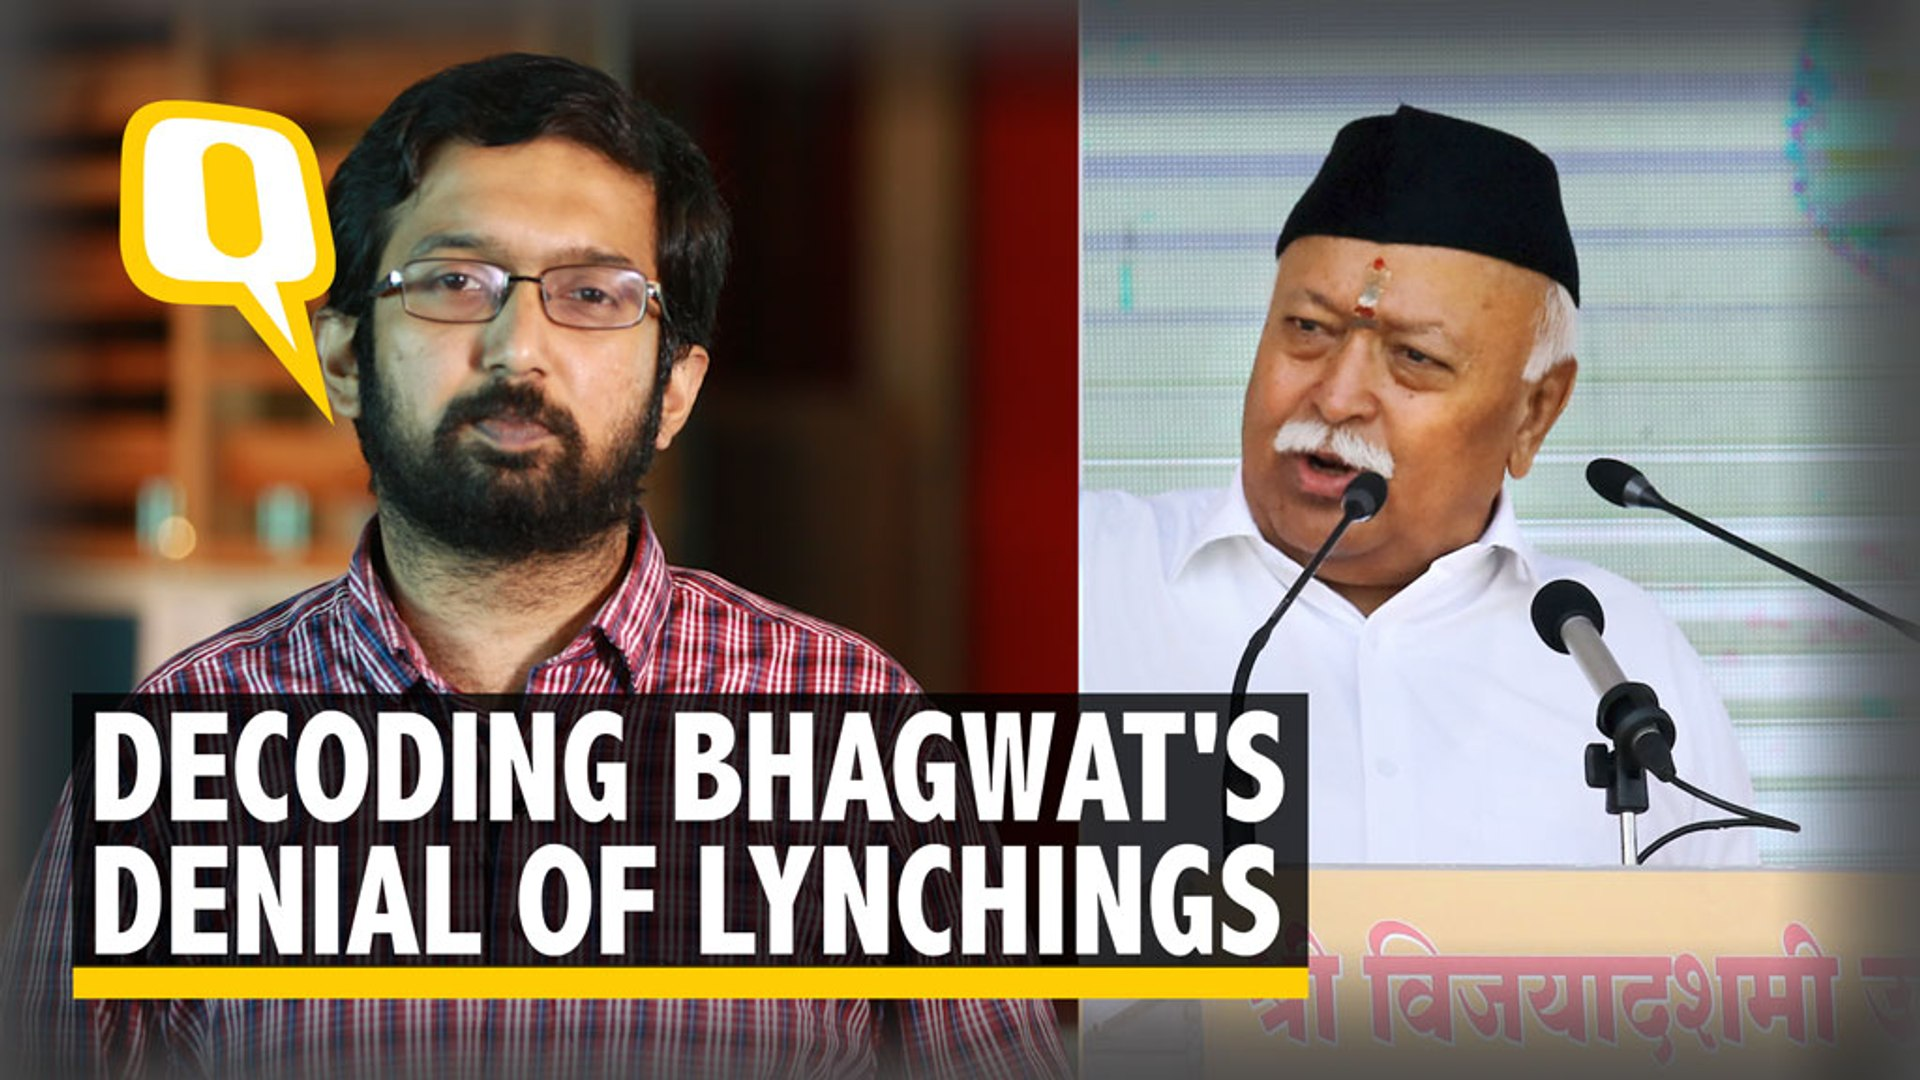 Why Mohan Bhagwat Denied Lynchings & Called it a Christian Concept